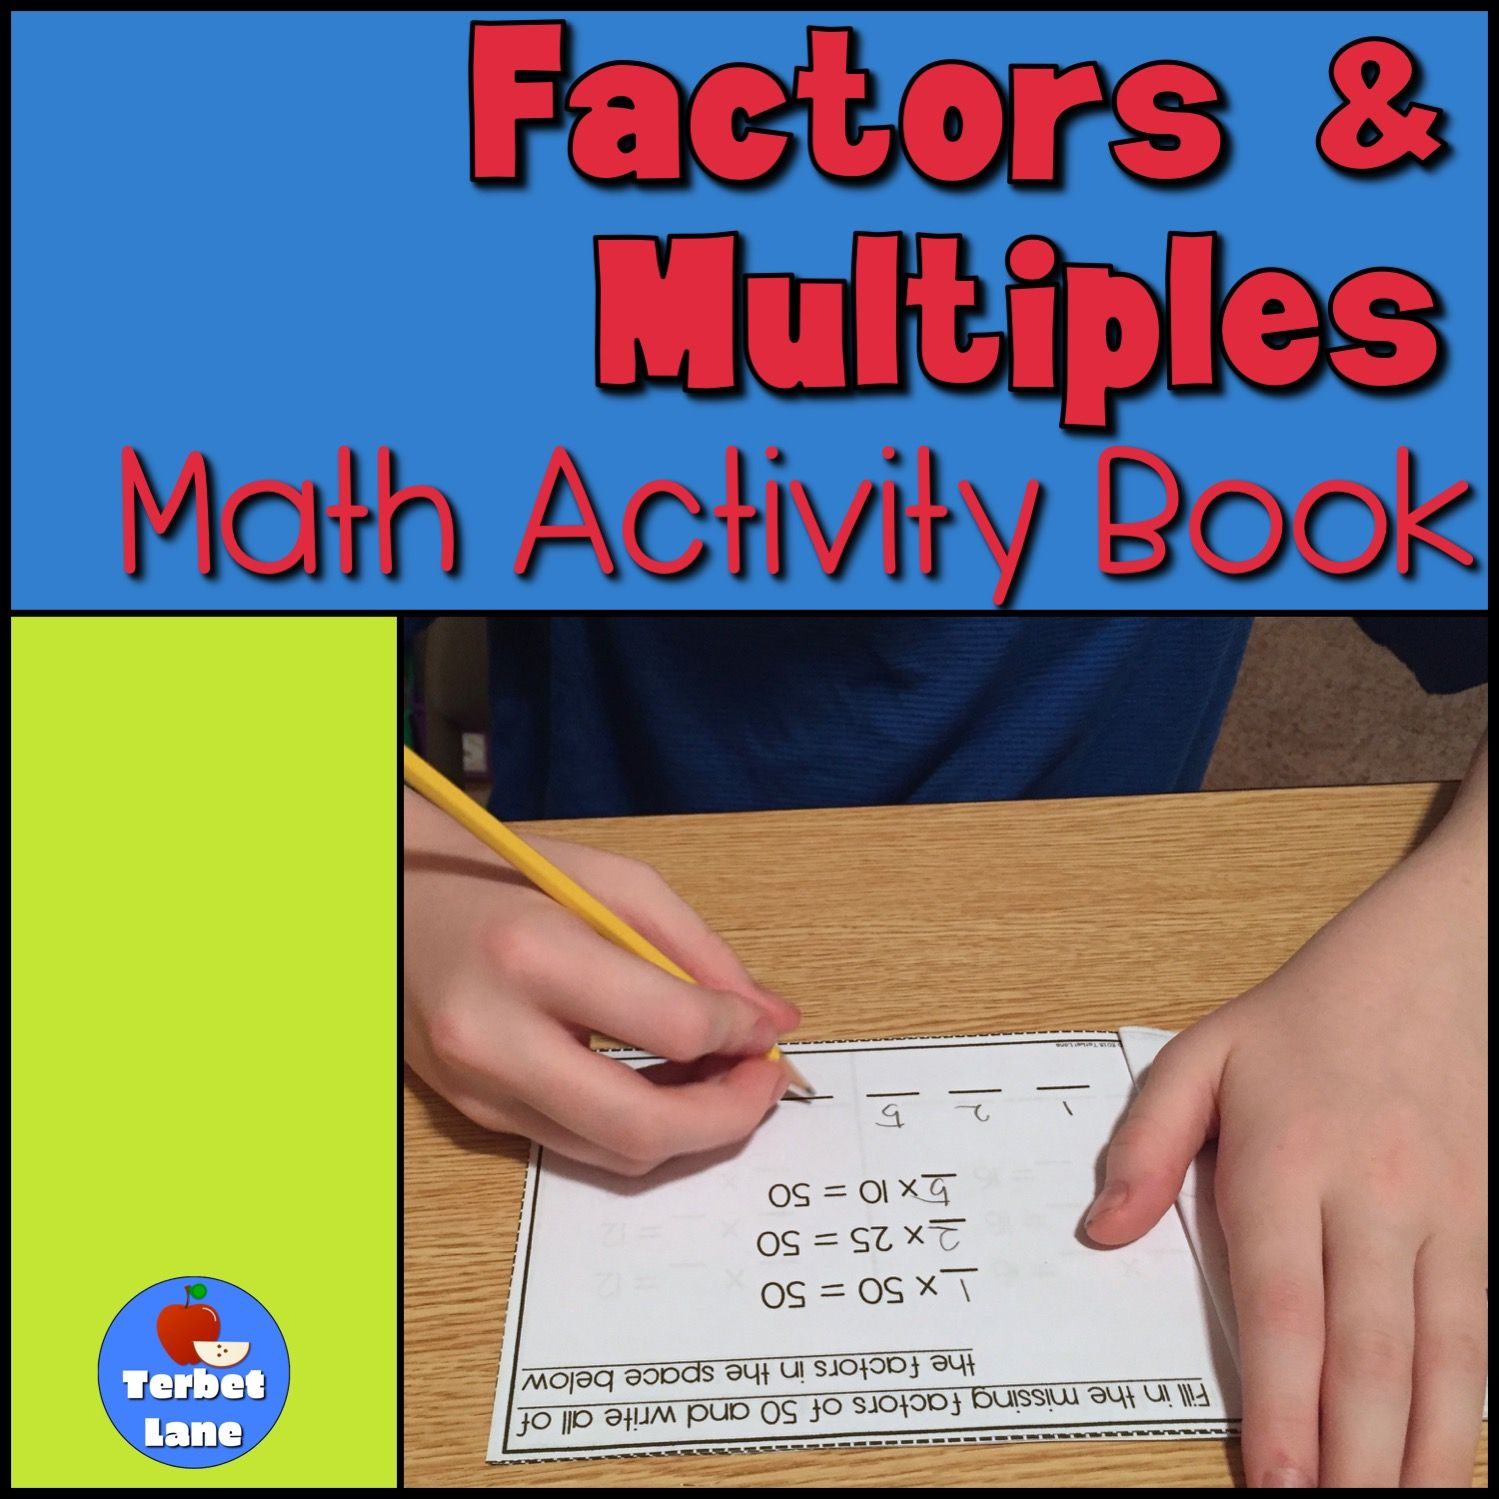 Factors and Multiples Math Activity Book from Terbet Lane